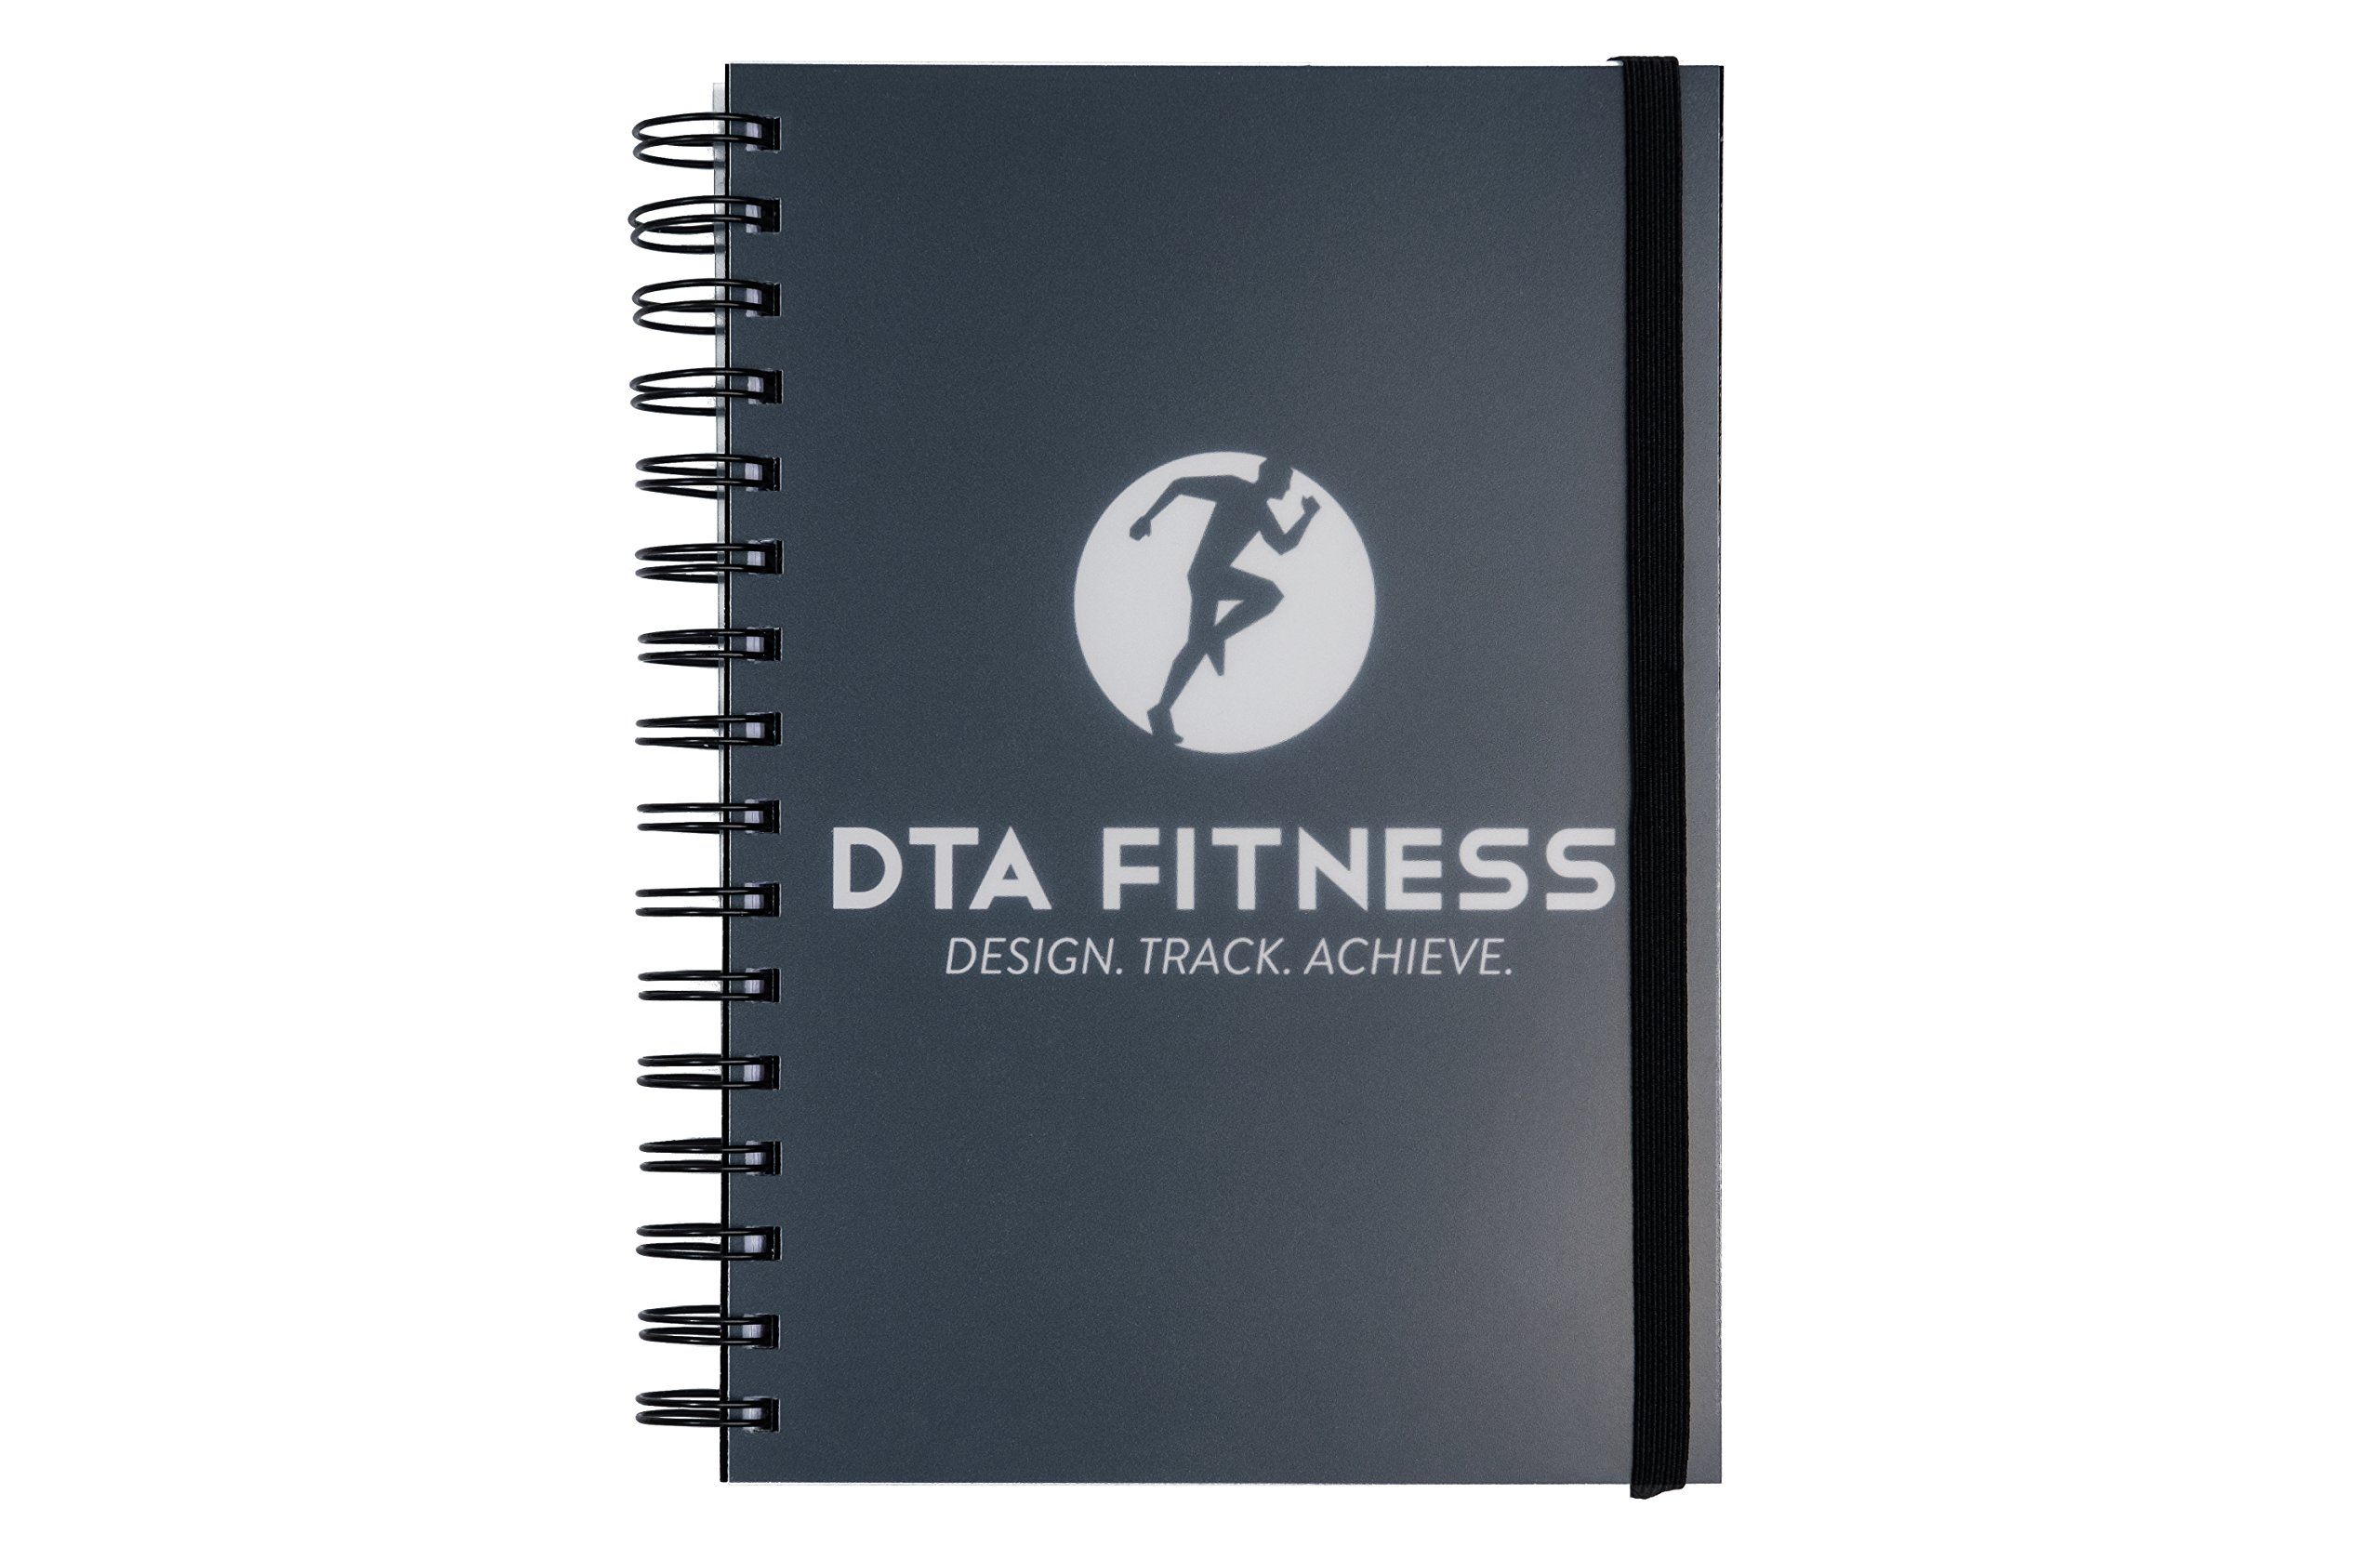 DTA Fitness Journal - Training Log, Food Diary, Goal Design & Review - 12 Weeks, A5 Size, Spiral Bound - Weights & Cardio Log, Macro & Calorie Tracker, Shopping List - Color Printed